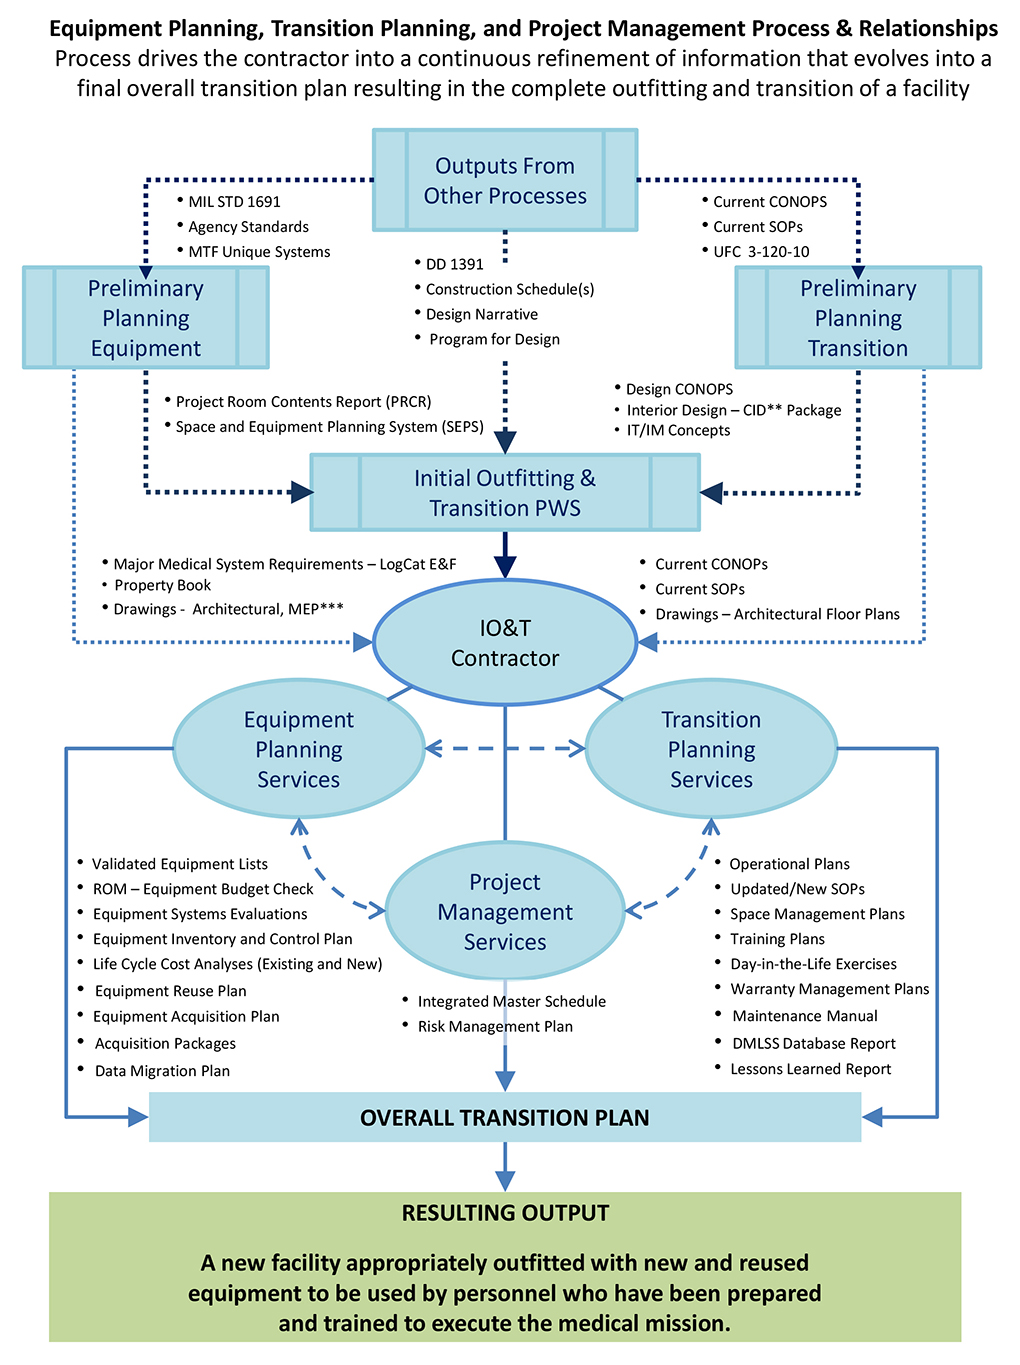 Medical division initial outfitting and transition program image of process flow nvjuhfo Choice Image